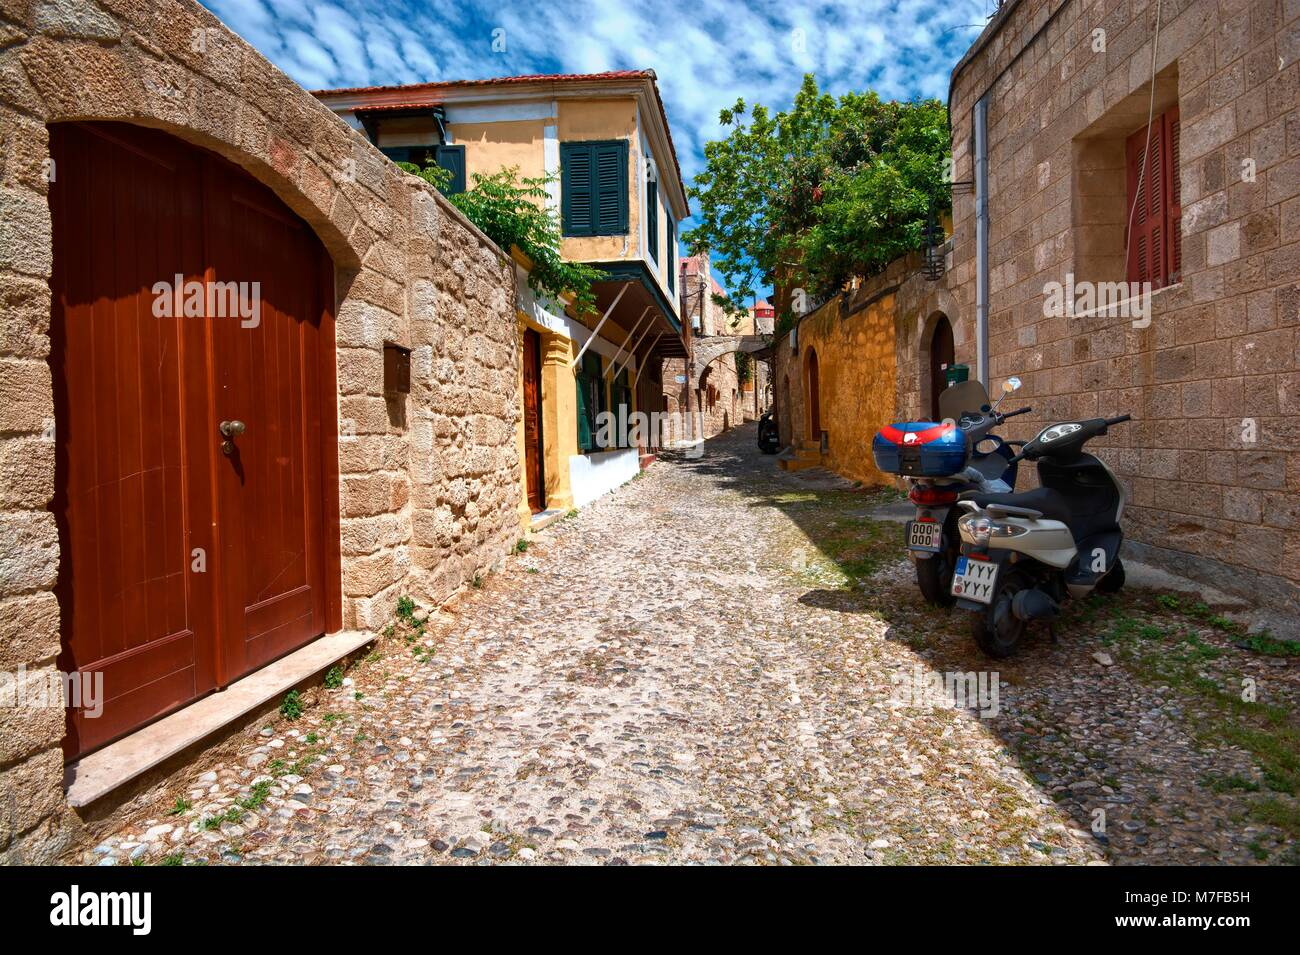 Narrow street and architecture of medieval Old Town of Rhodes, Greece - Stock Image